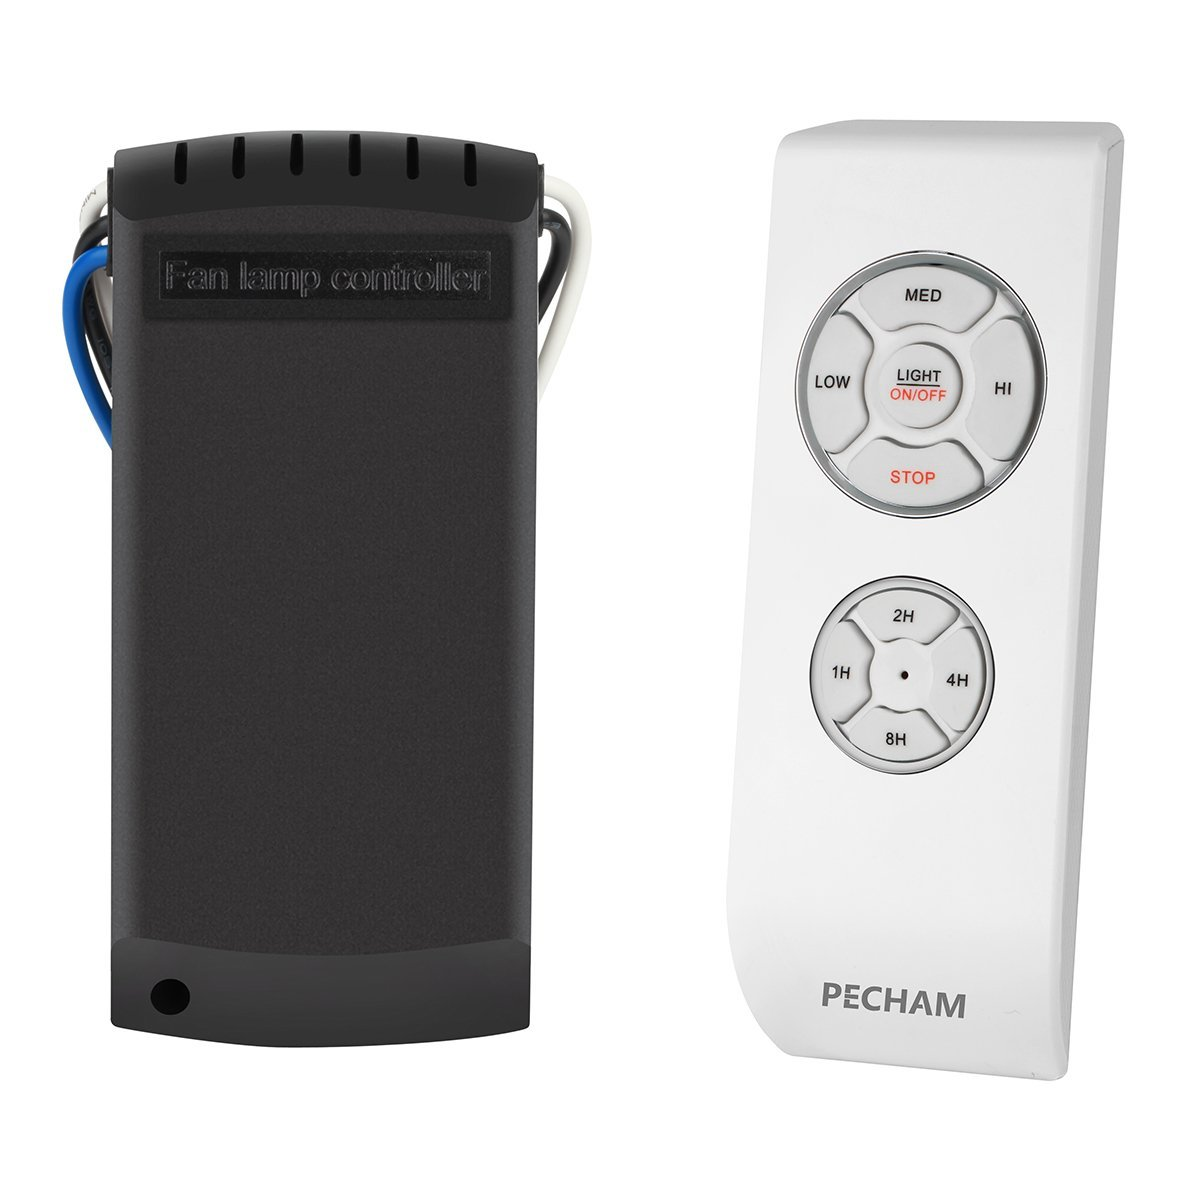 Universal Remote Control For Ceiling Fan Kit